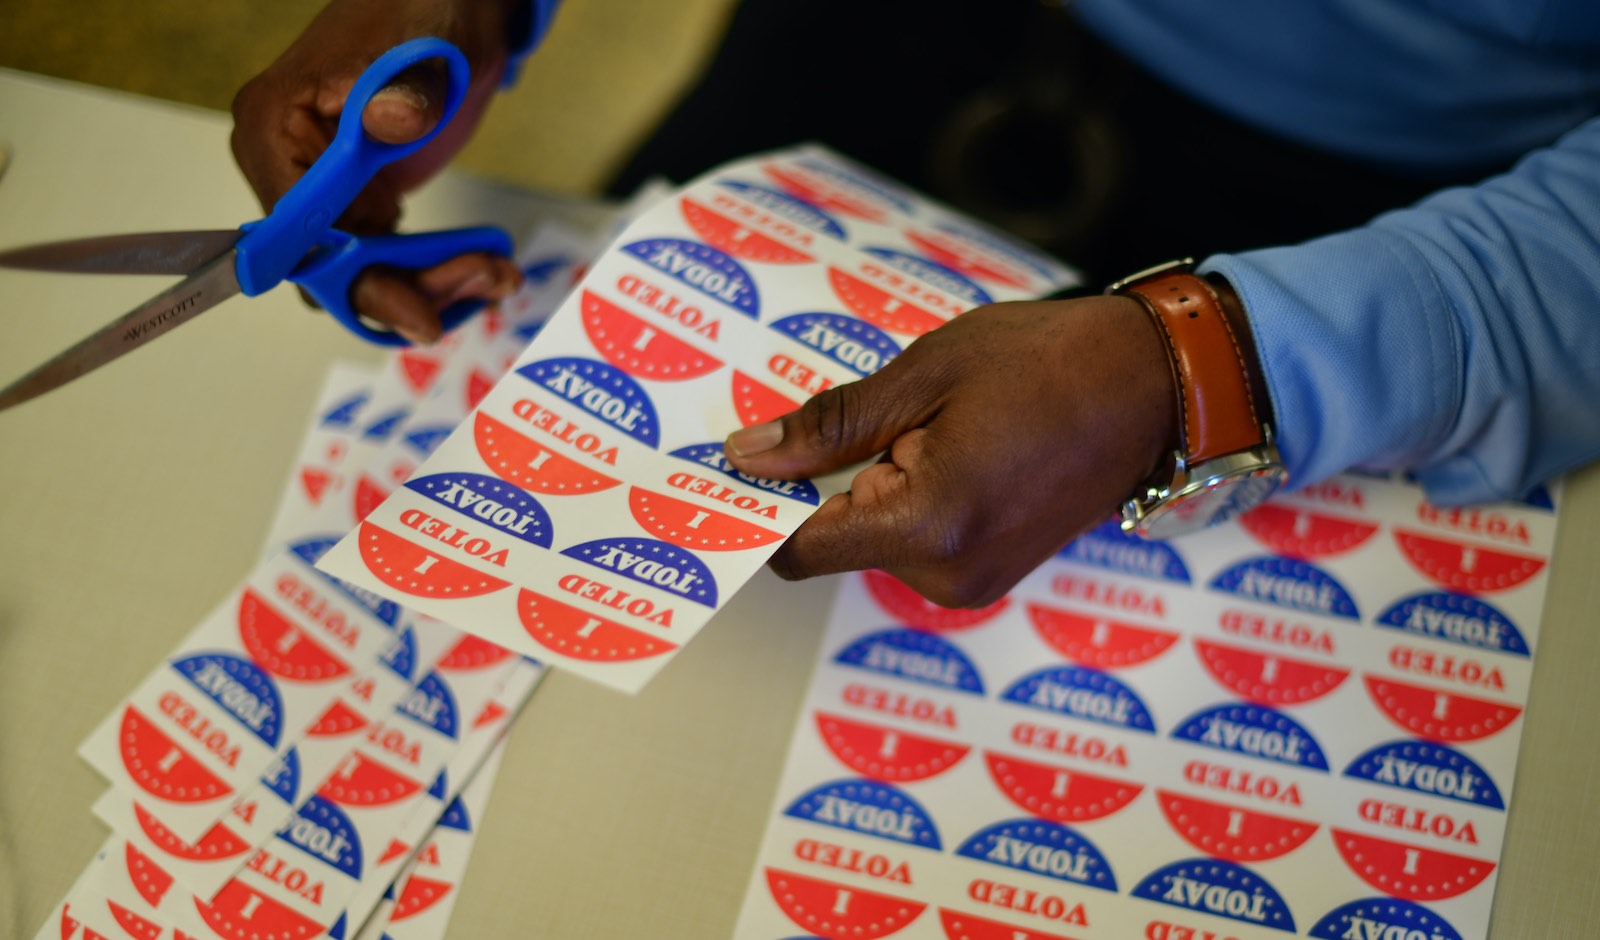 A volunteer cuts out stickers for voters at a polling station in Philadelphia, Pennsylvania, a key state in this year's election (Mark Makela/Getty Images)